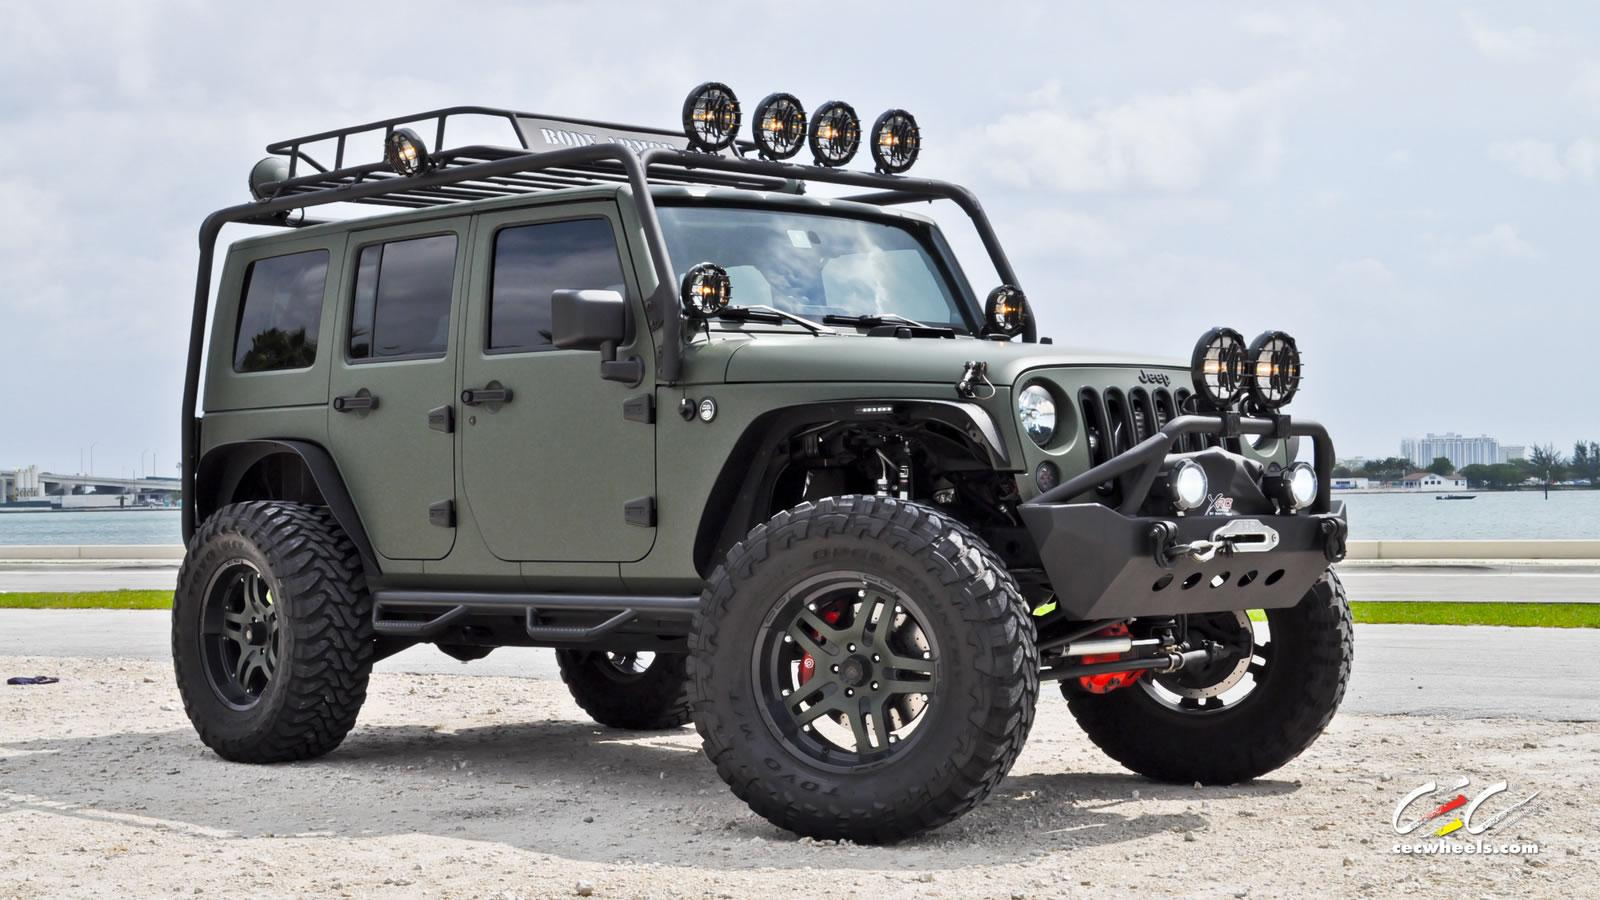 jeep wrangler unlimited white wallpaper 2013 Jeep Wrangler Unlimited 1600x900